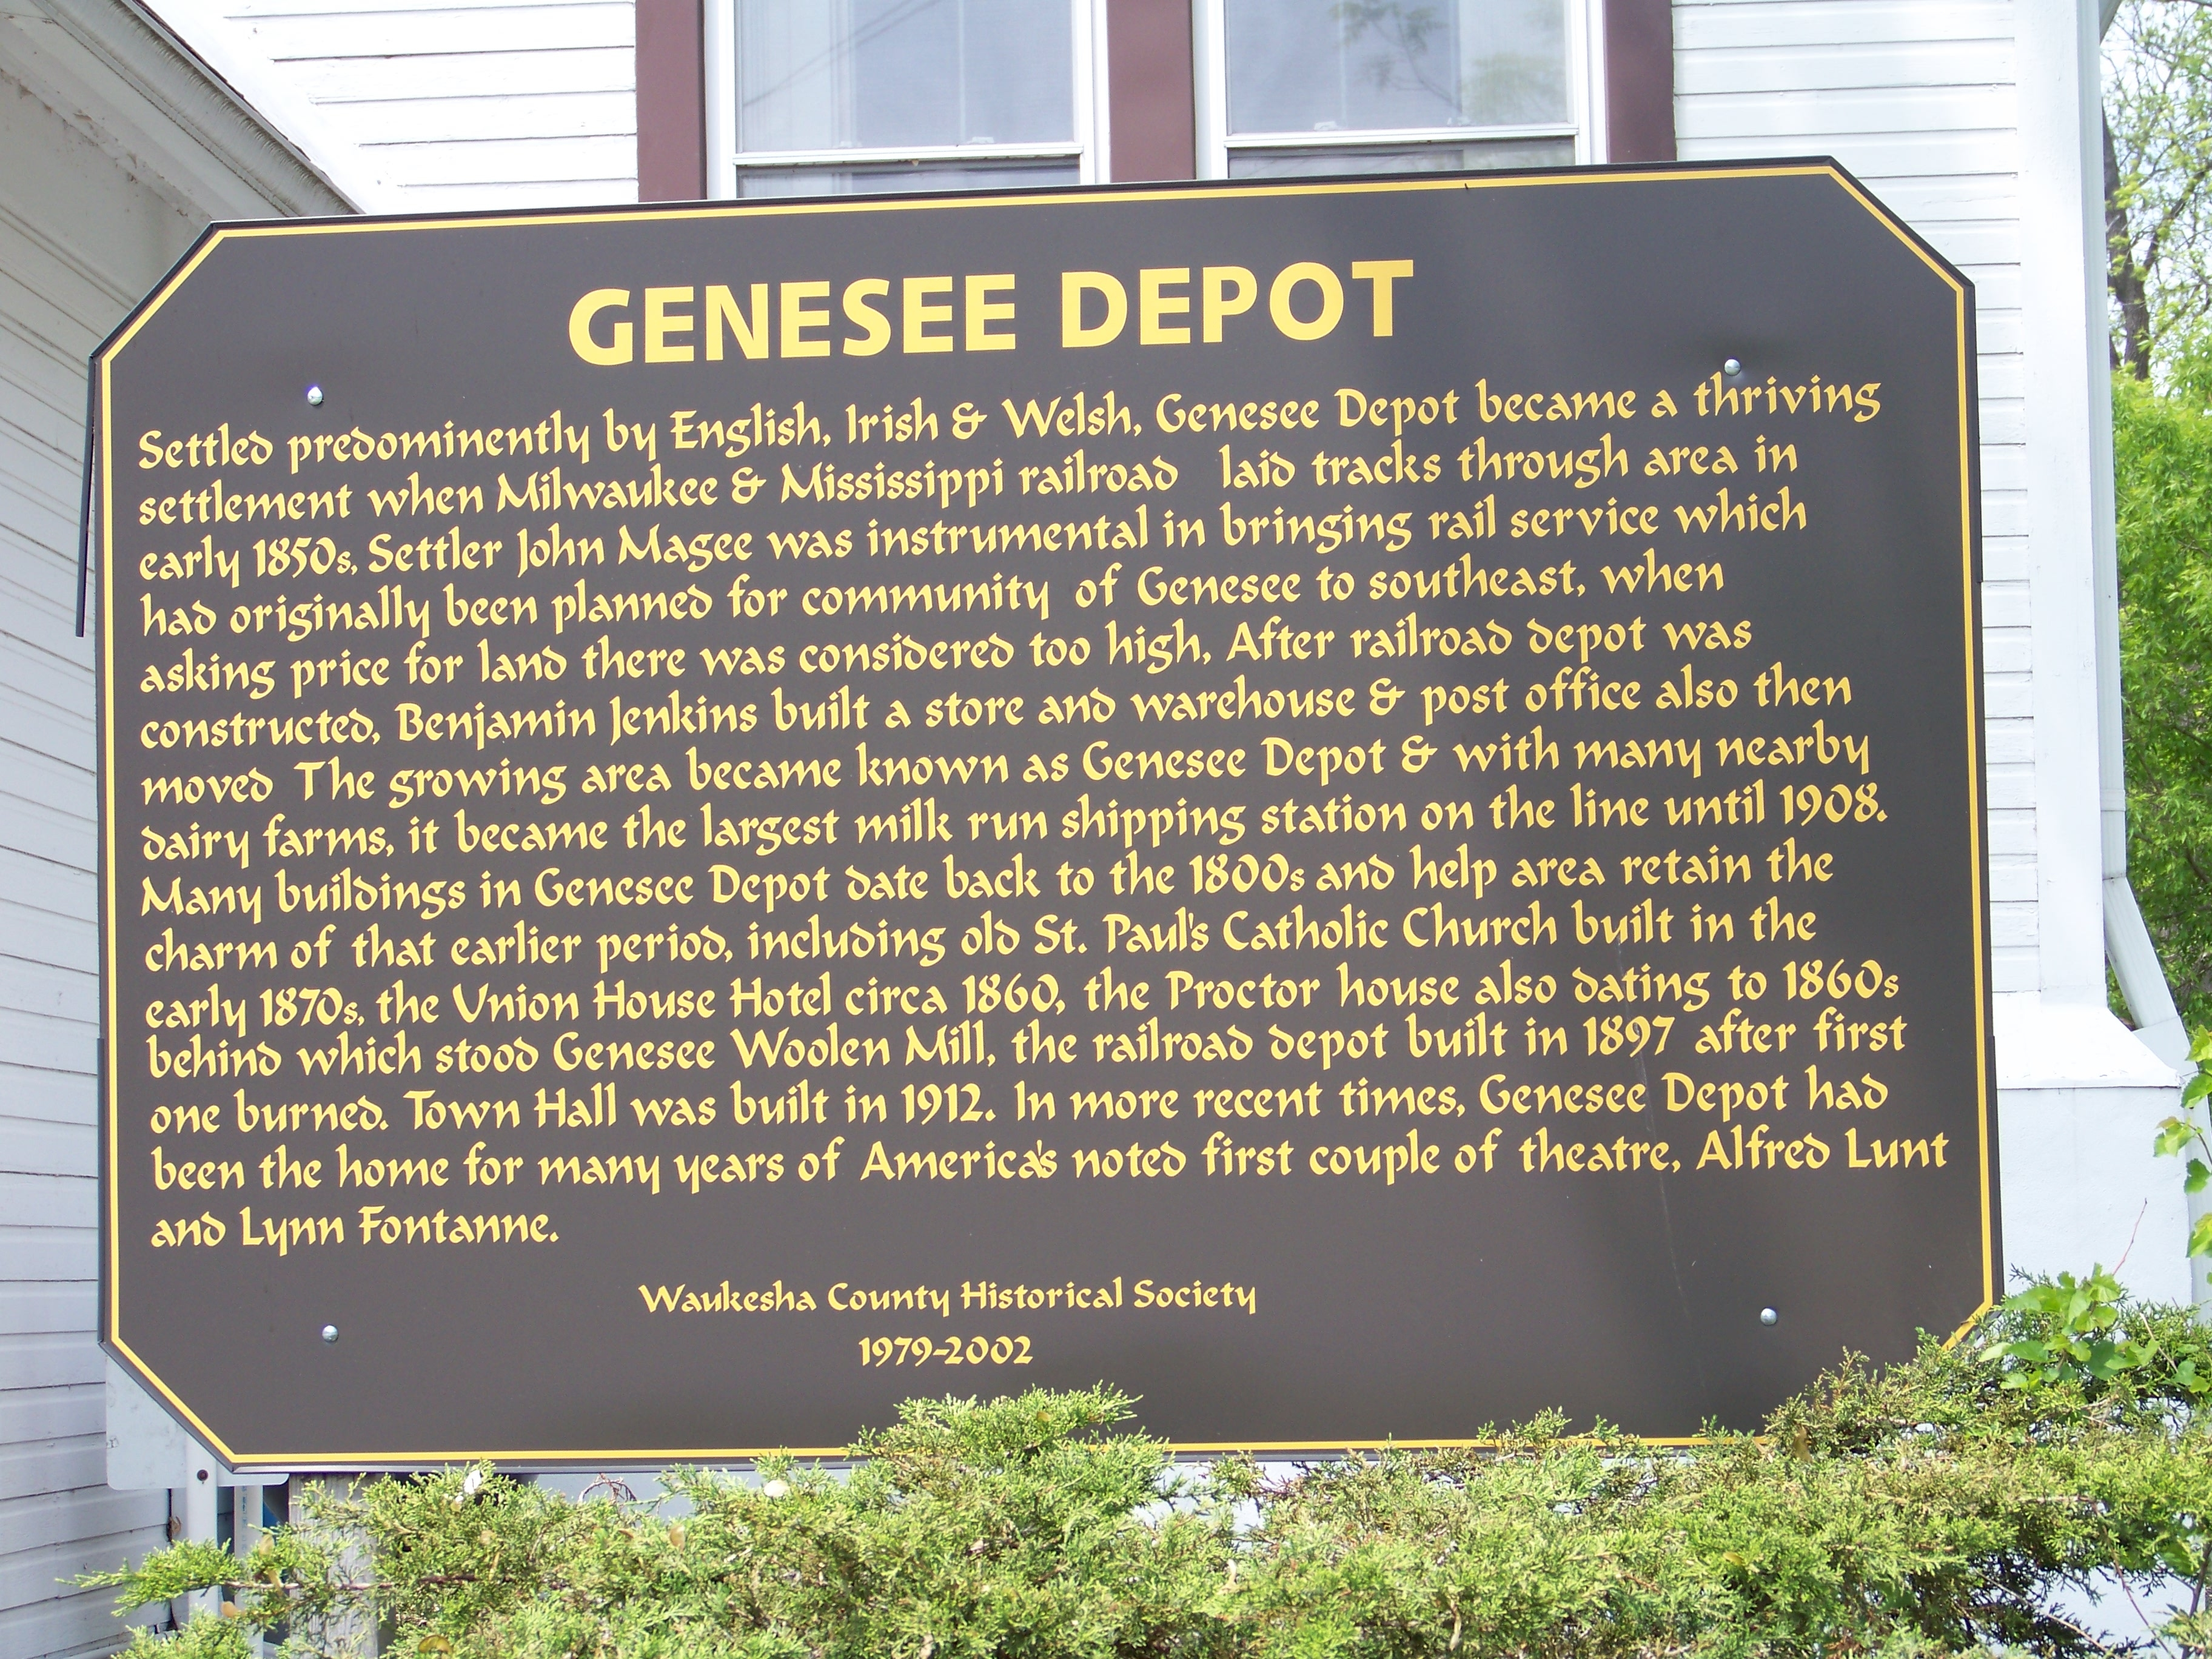 genesee depot guys Search 2,746 genesee depot, wi air conditioning and heating companies to find the best heating and cooling company for your project see the top reviewed local air conditioning and heating companies in genesee depot, wi on houzz.